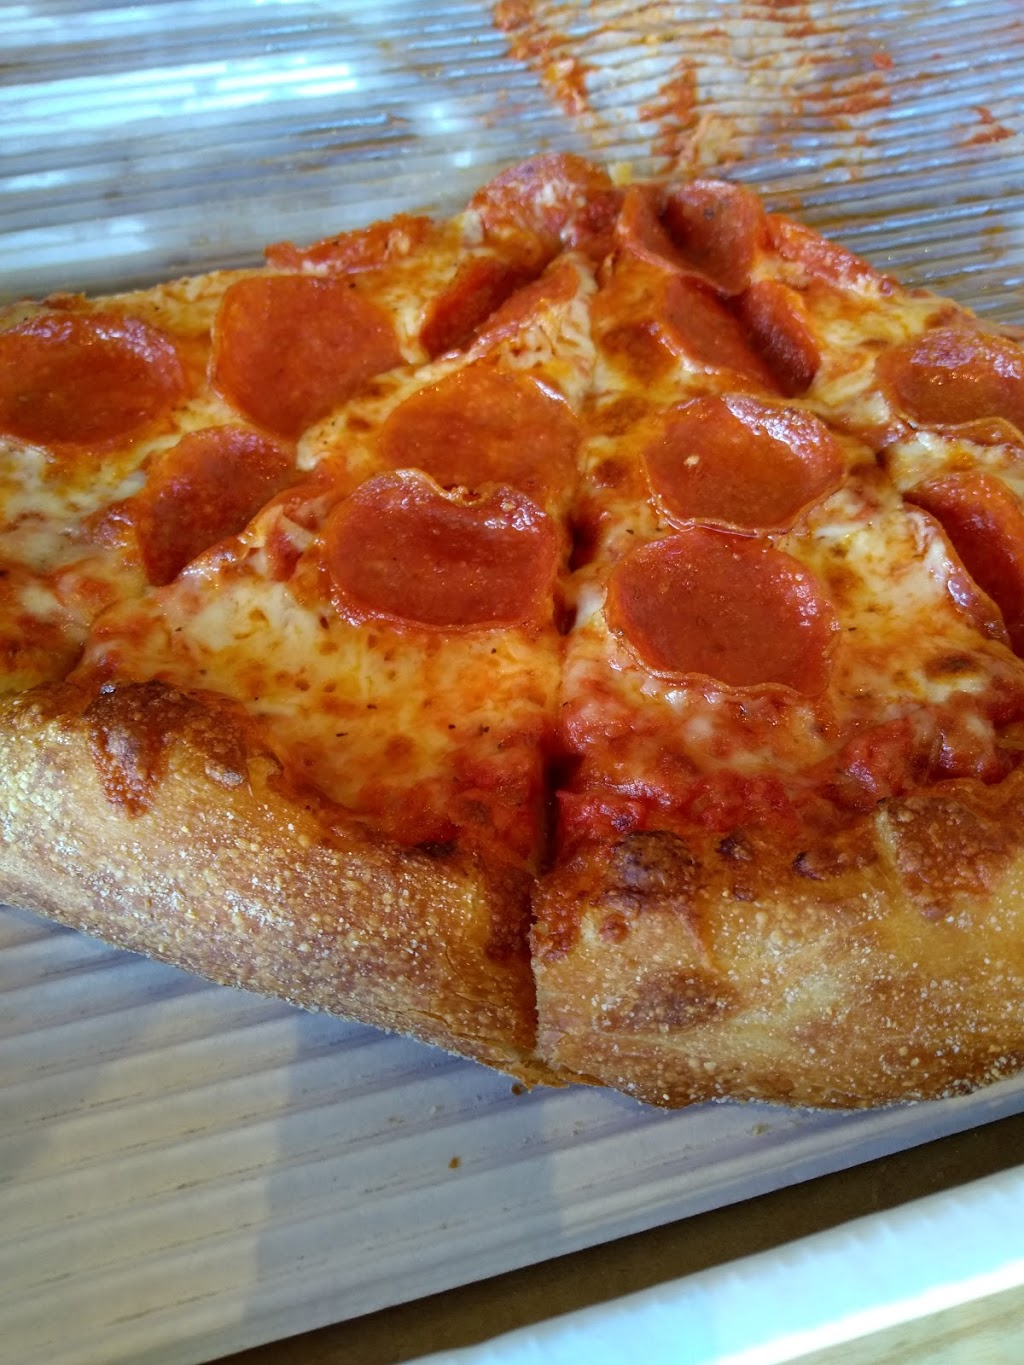 Marcos Pizza - meal delivery  | Photo 4 of 5 | Address: 9803 TX-242 Suite 100, Conroe, TX 77385, USA | Phone: (936) 282-5253